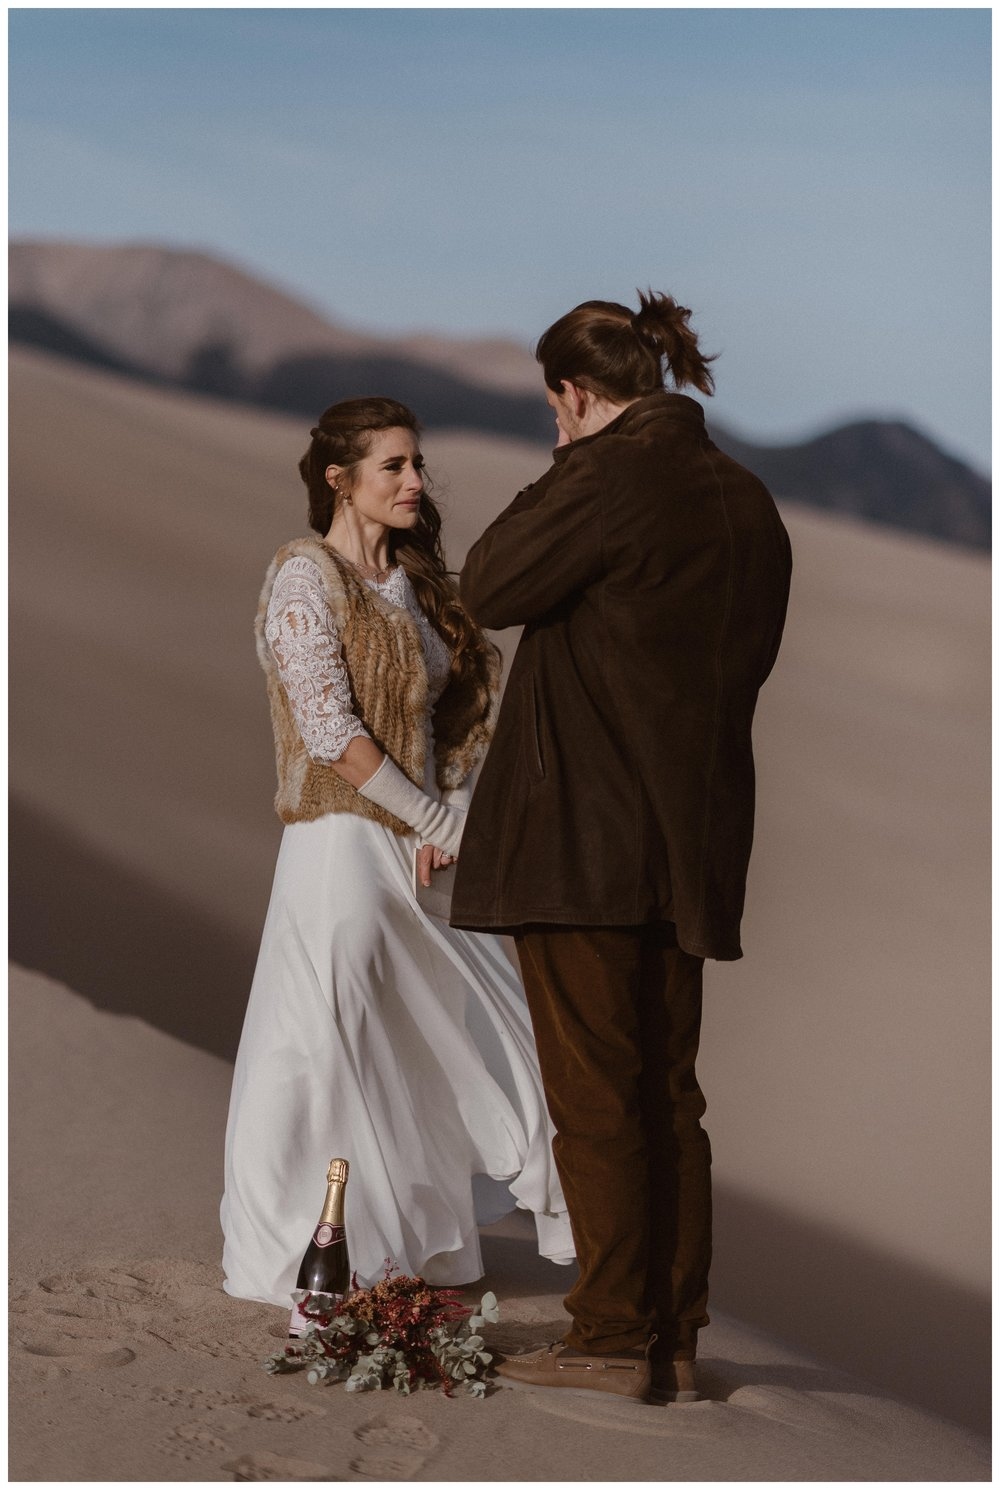 Standing along on top of the dunes at Great Sand Dunes National Park in Southern Colorado for a self solemnizing wedding elopement ceremony. Photo by Maddie Mae Photo, Adventures Instead.